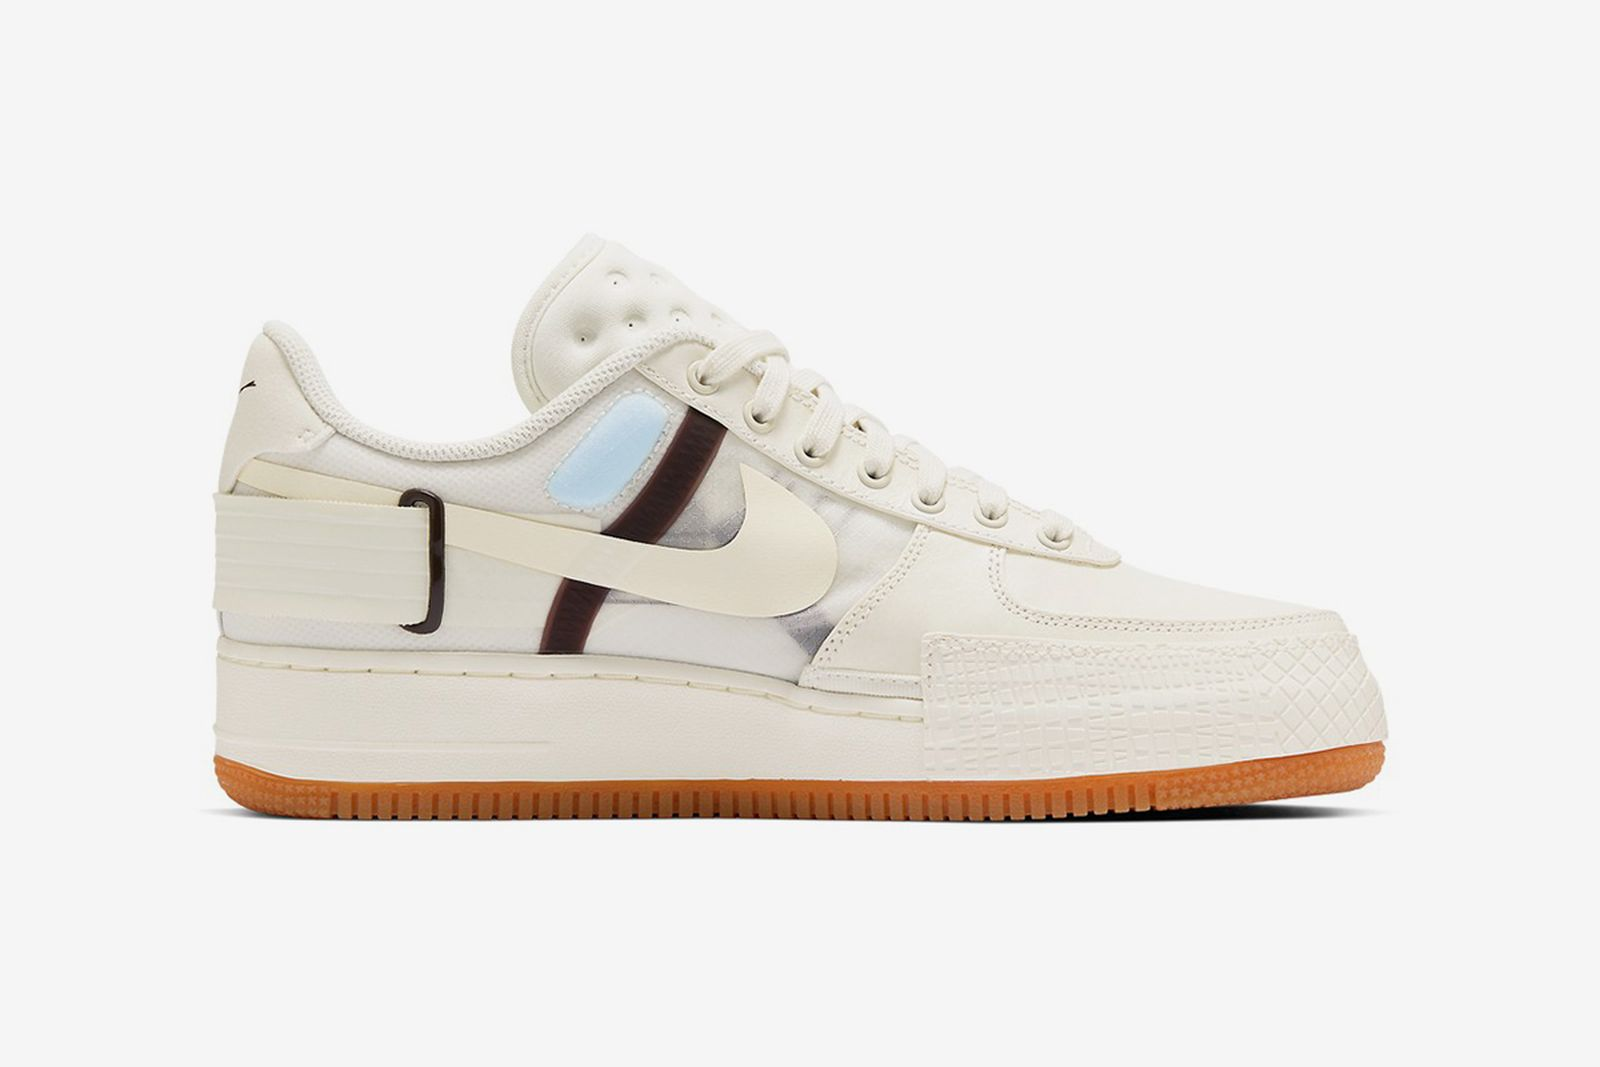 """Disponible camarera Agarrar  Nike Air Force 1 Type """"Light Ivory/Earth Brown"""": First Look & Info"""